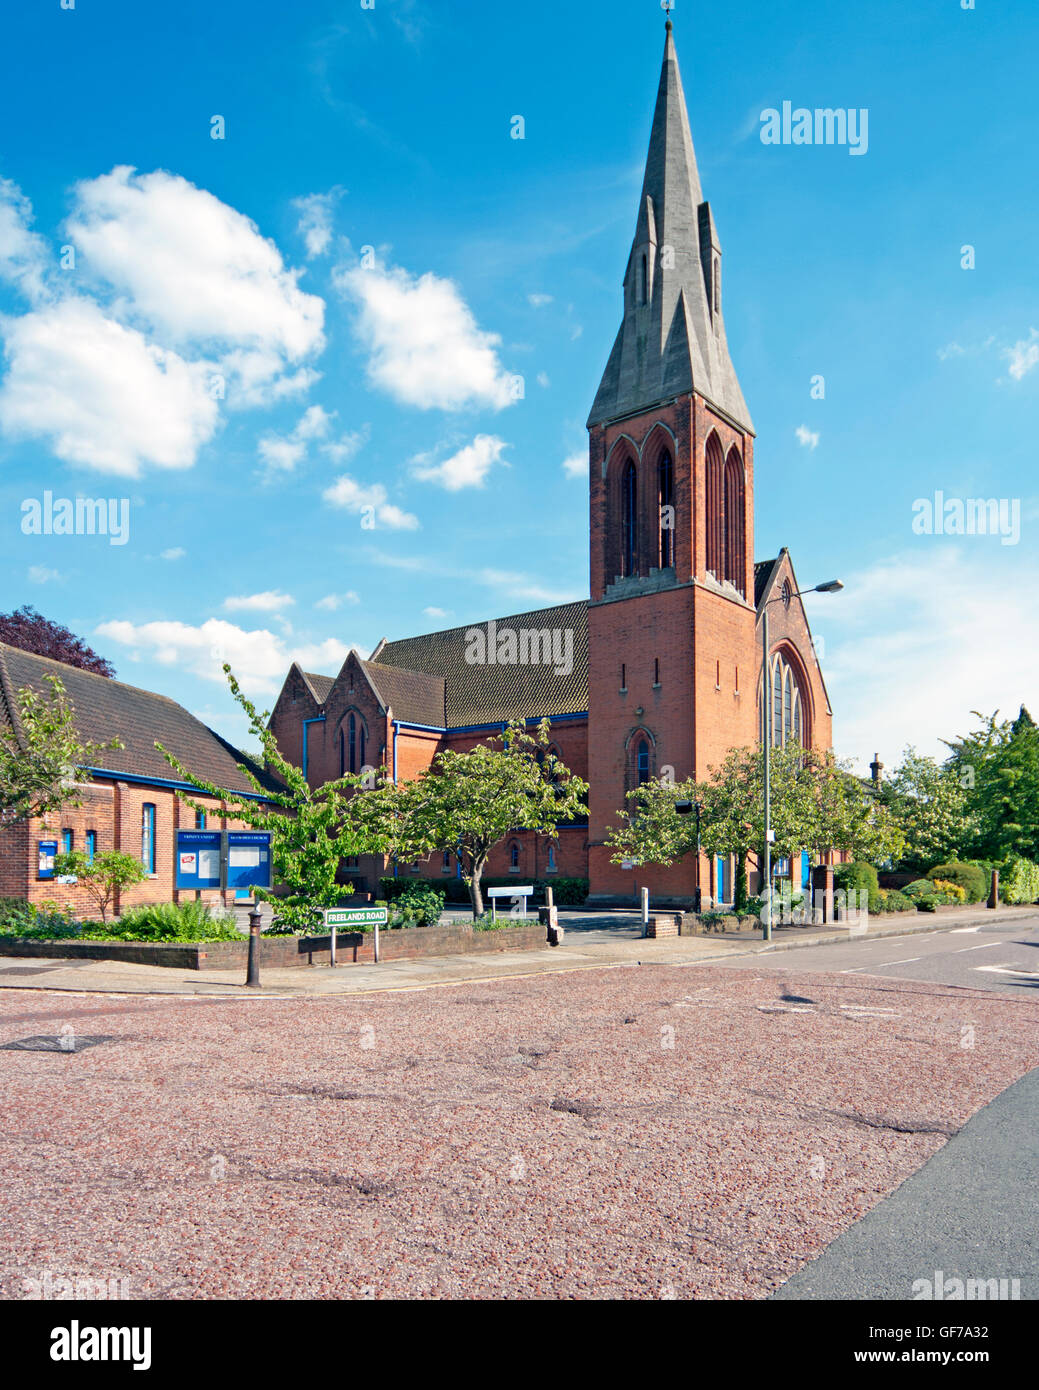 Bromley, Greater London, Trinity Reform Church - Stock Image